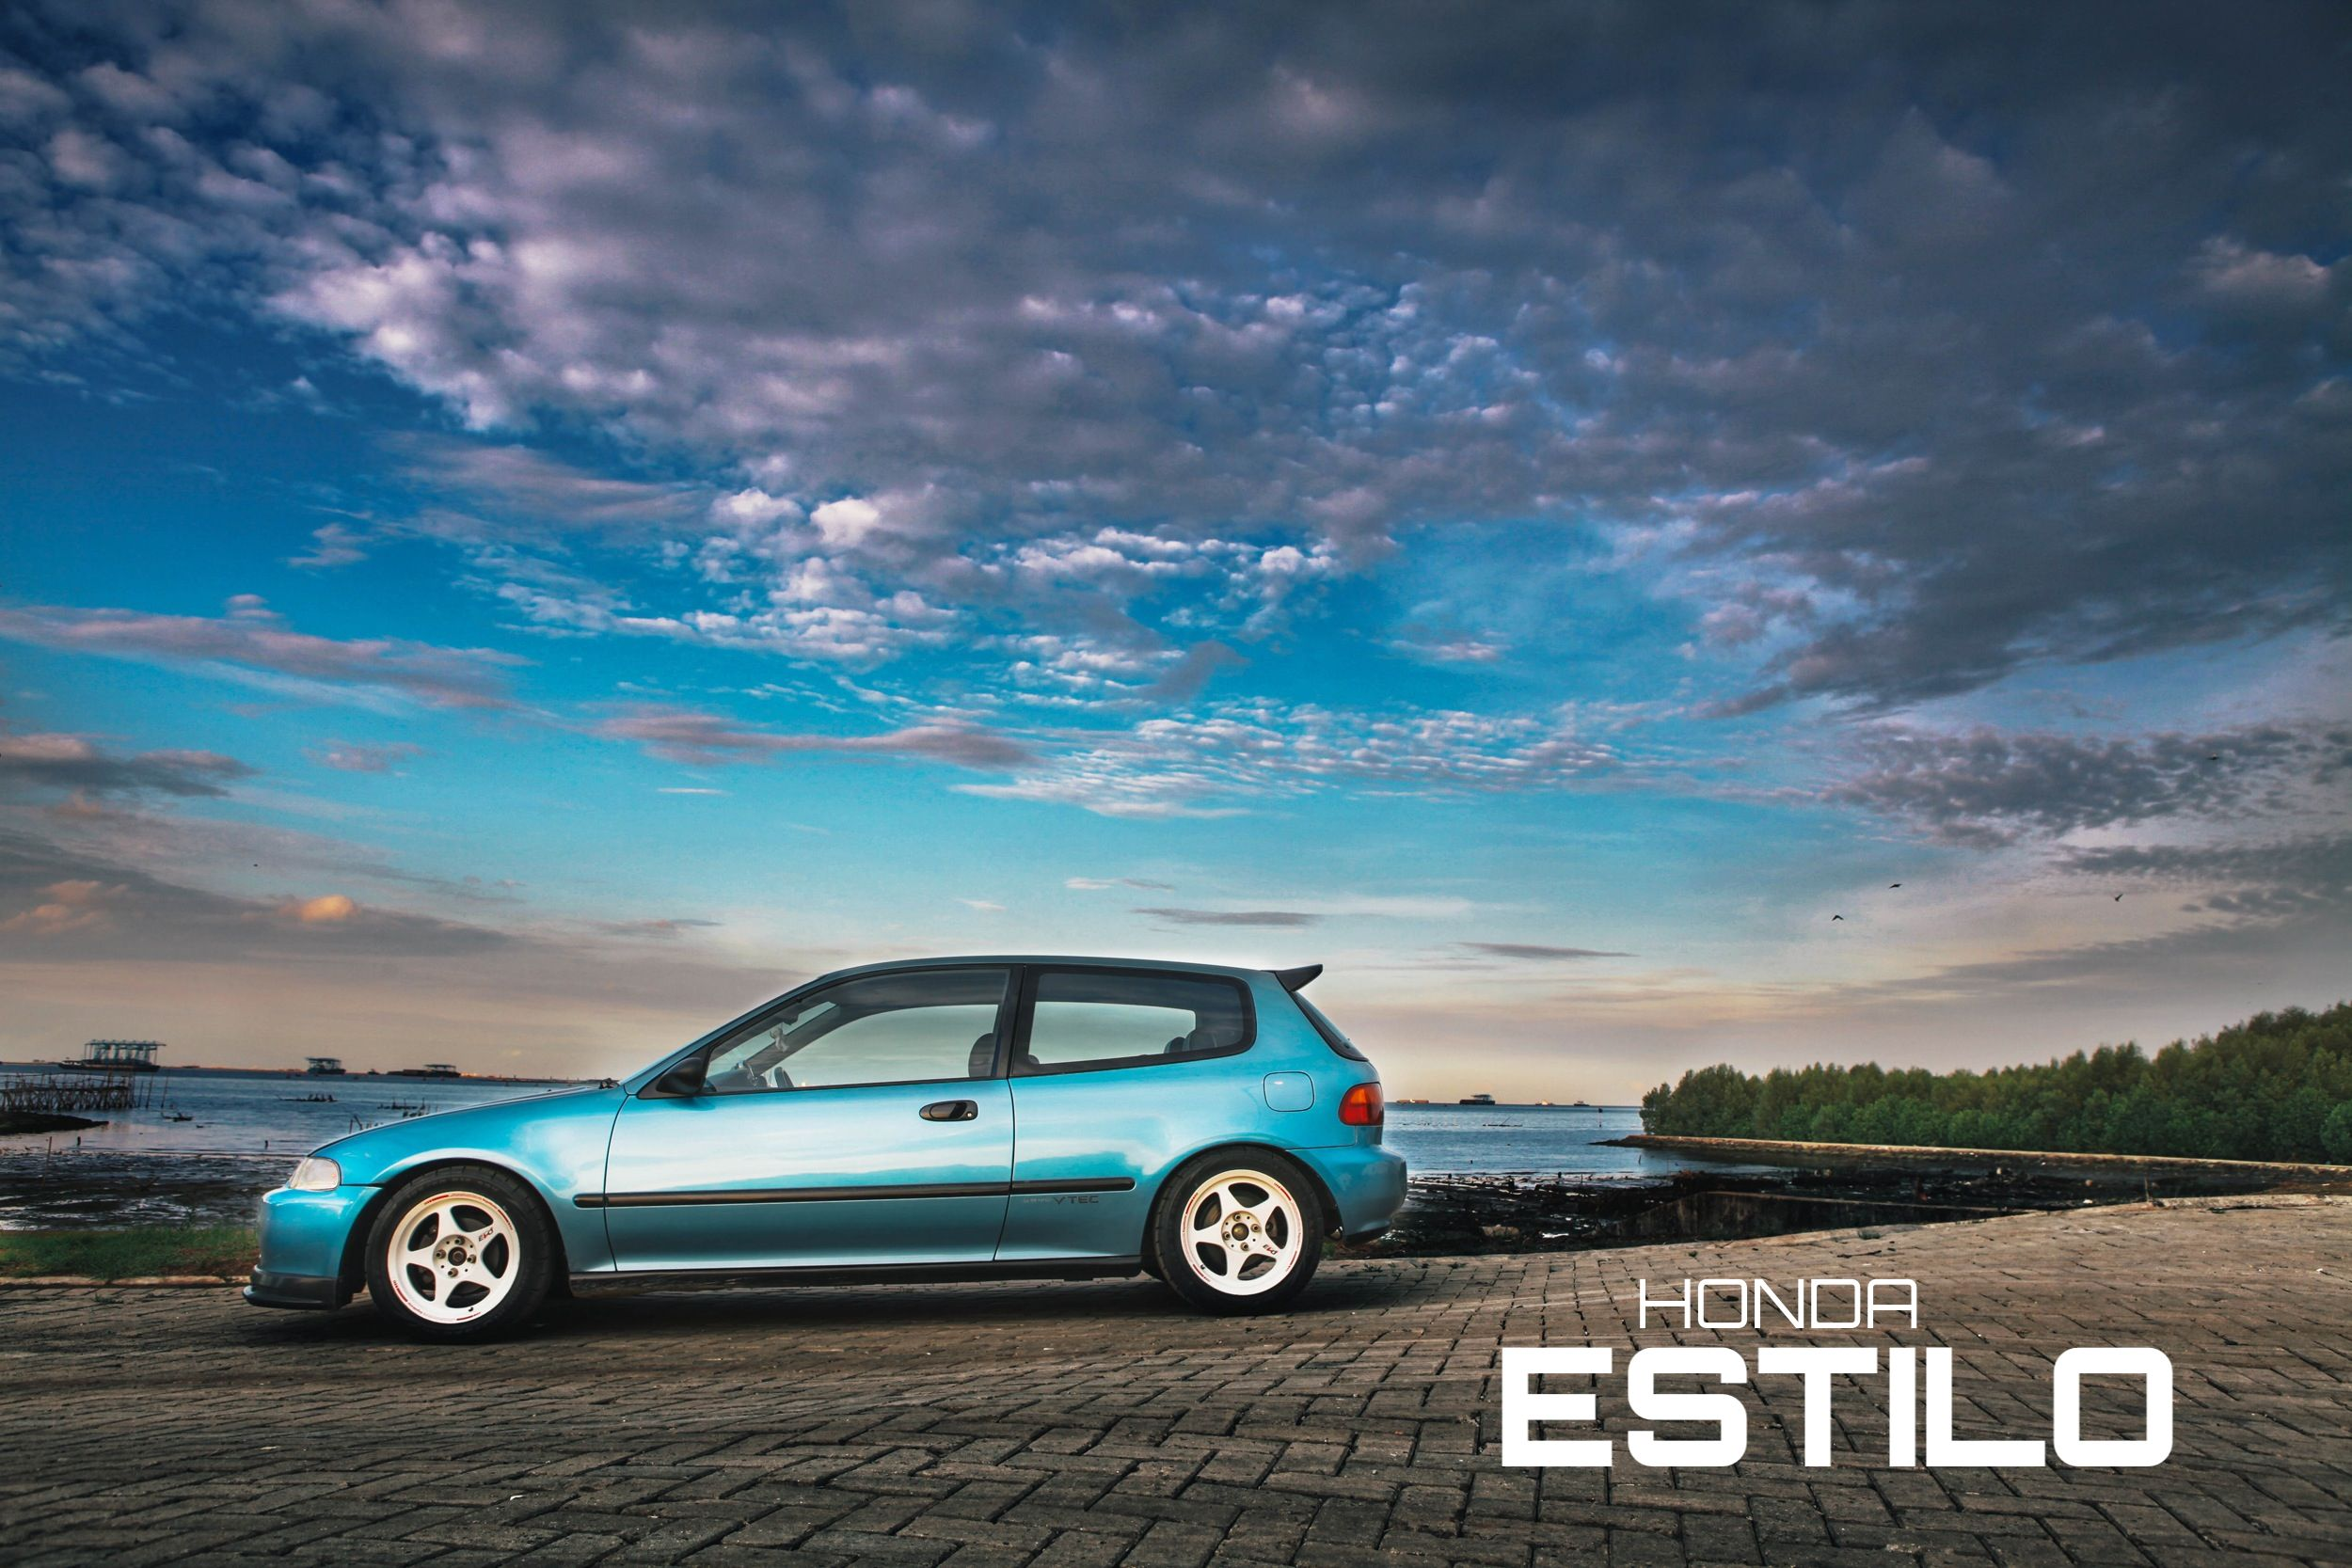 honda estilo eg6 vehicles honda honda civic honda civic hatchback rh pinterest com